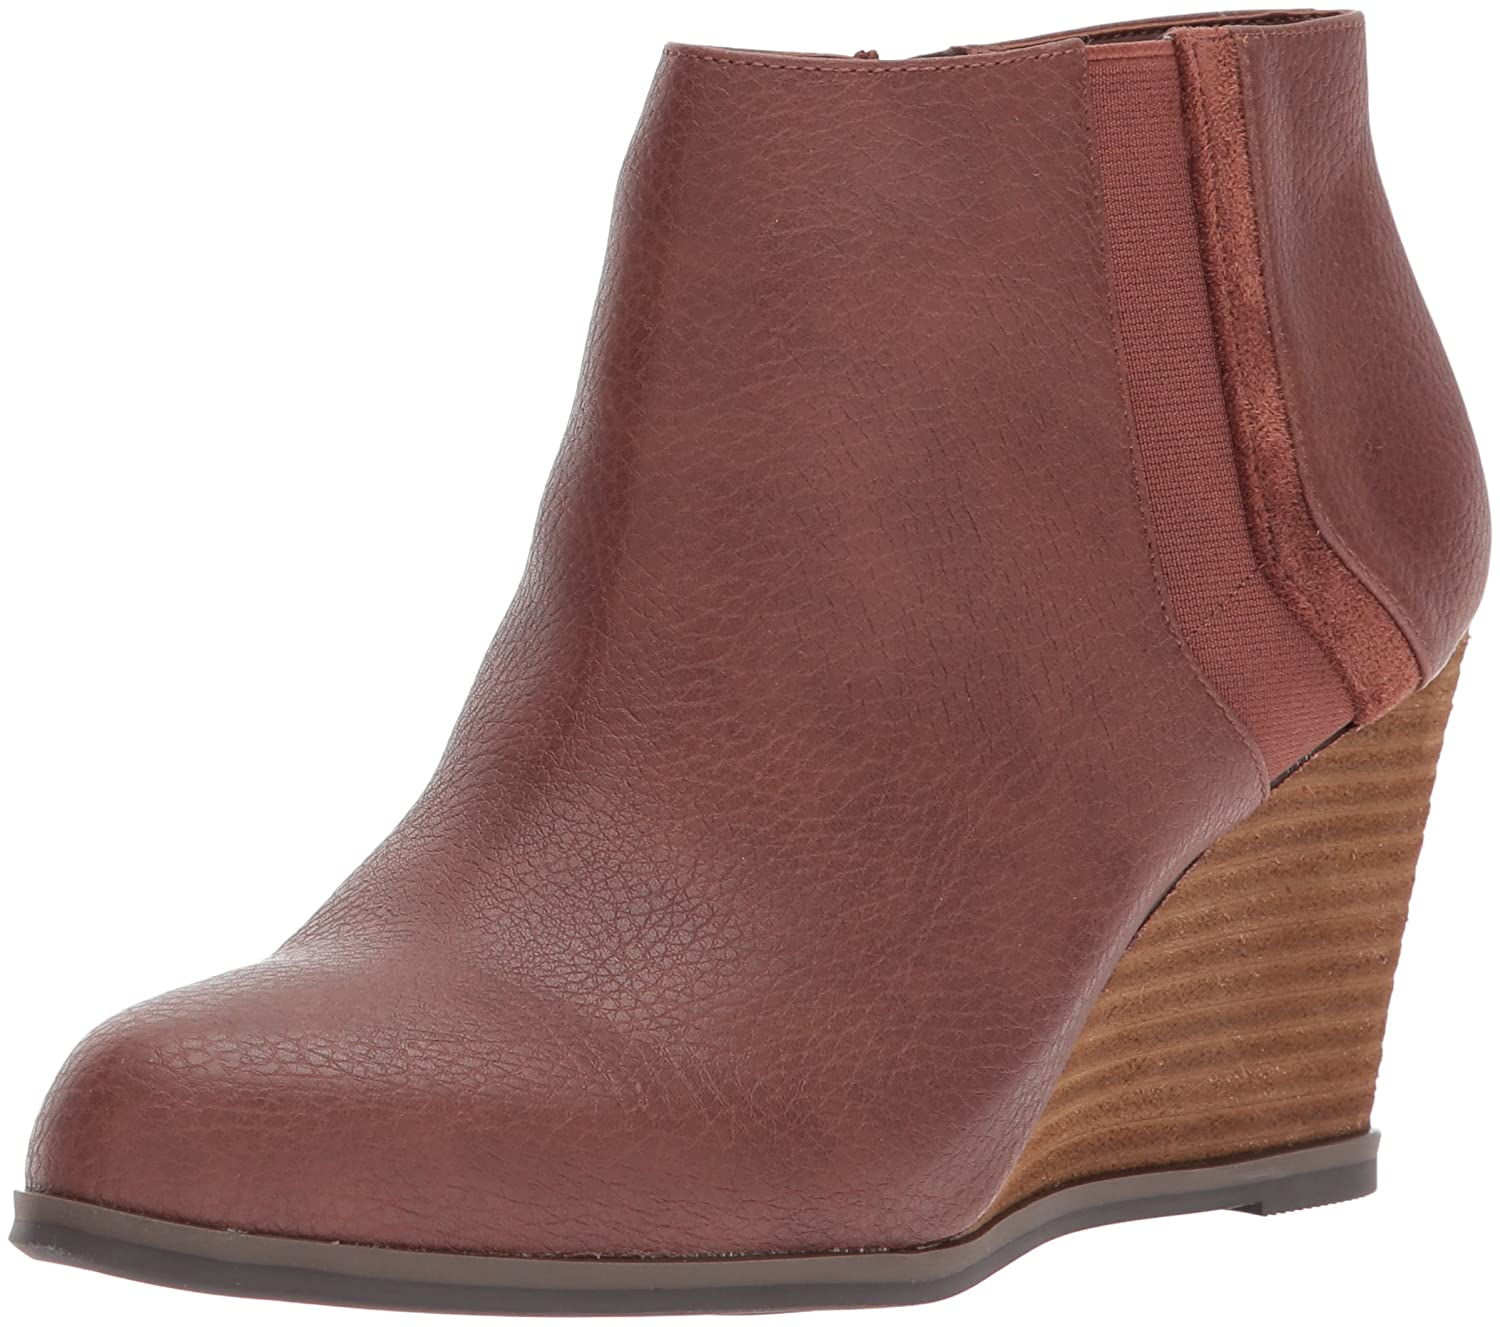 Dr. Scholl's Shoes Women's Patch Boot B071YJ2W4Z 6 B(M) US|Copper Brown Tumbled